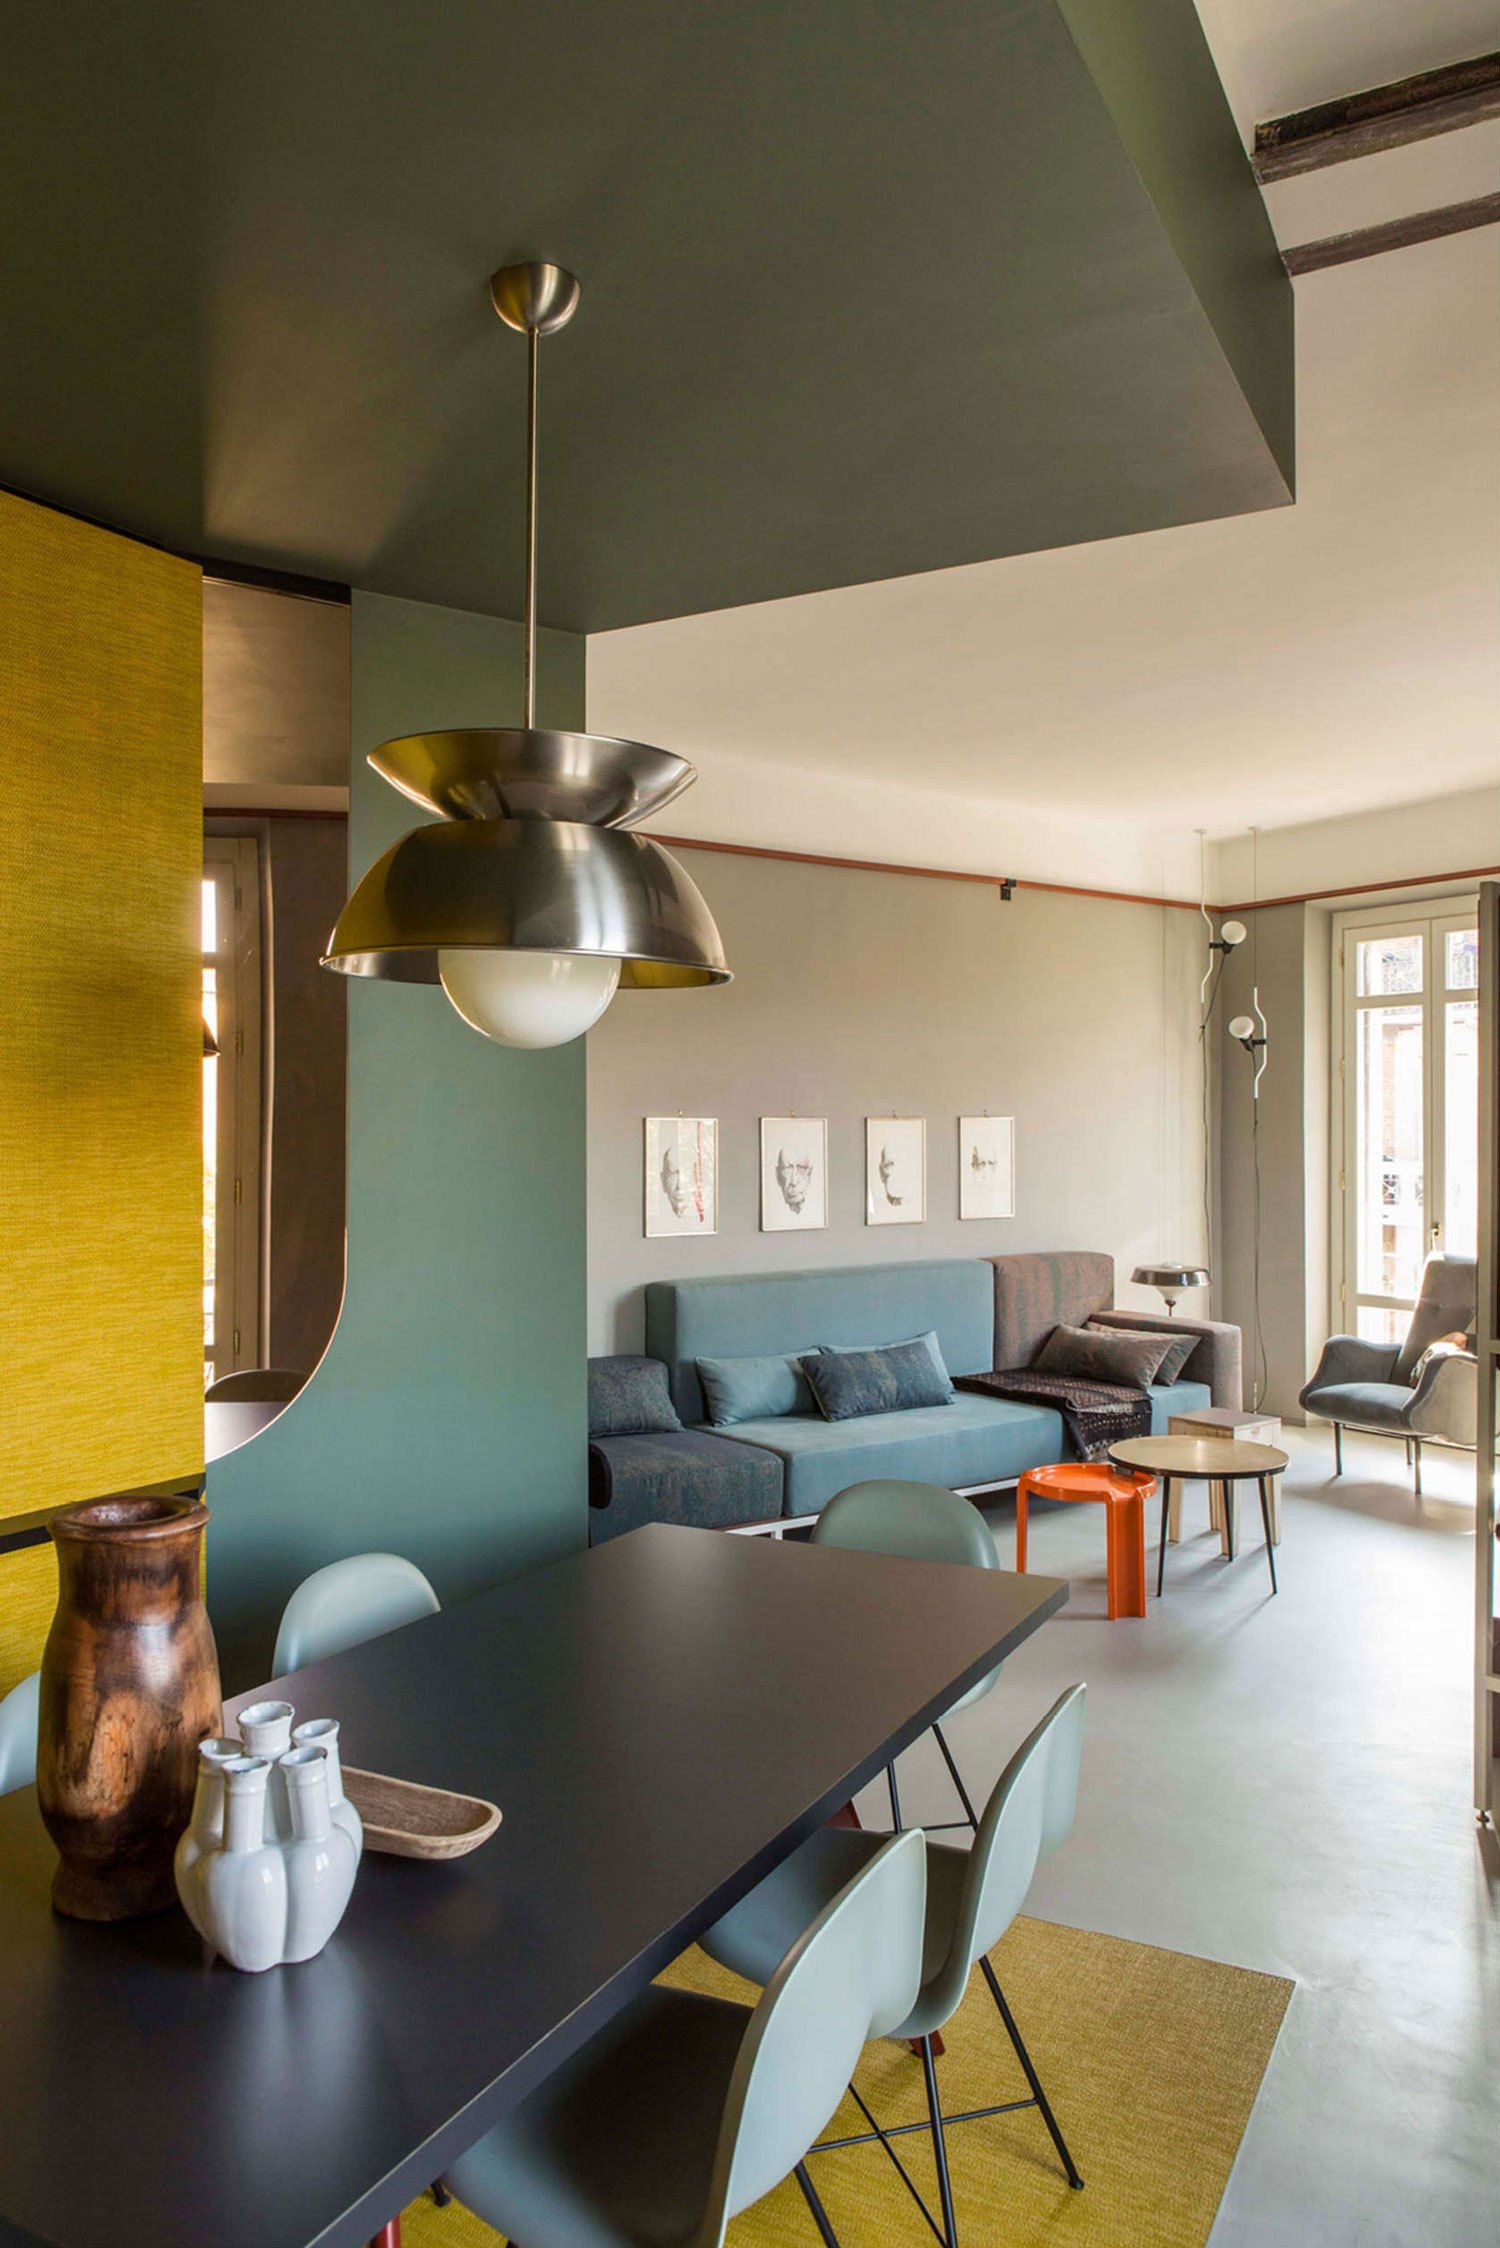 Promenade apartment in turin by sceg architects yellowtrace midcentury modern color interior home also inspiration daria zinovatnaya design pinterest rh